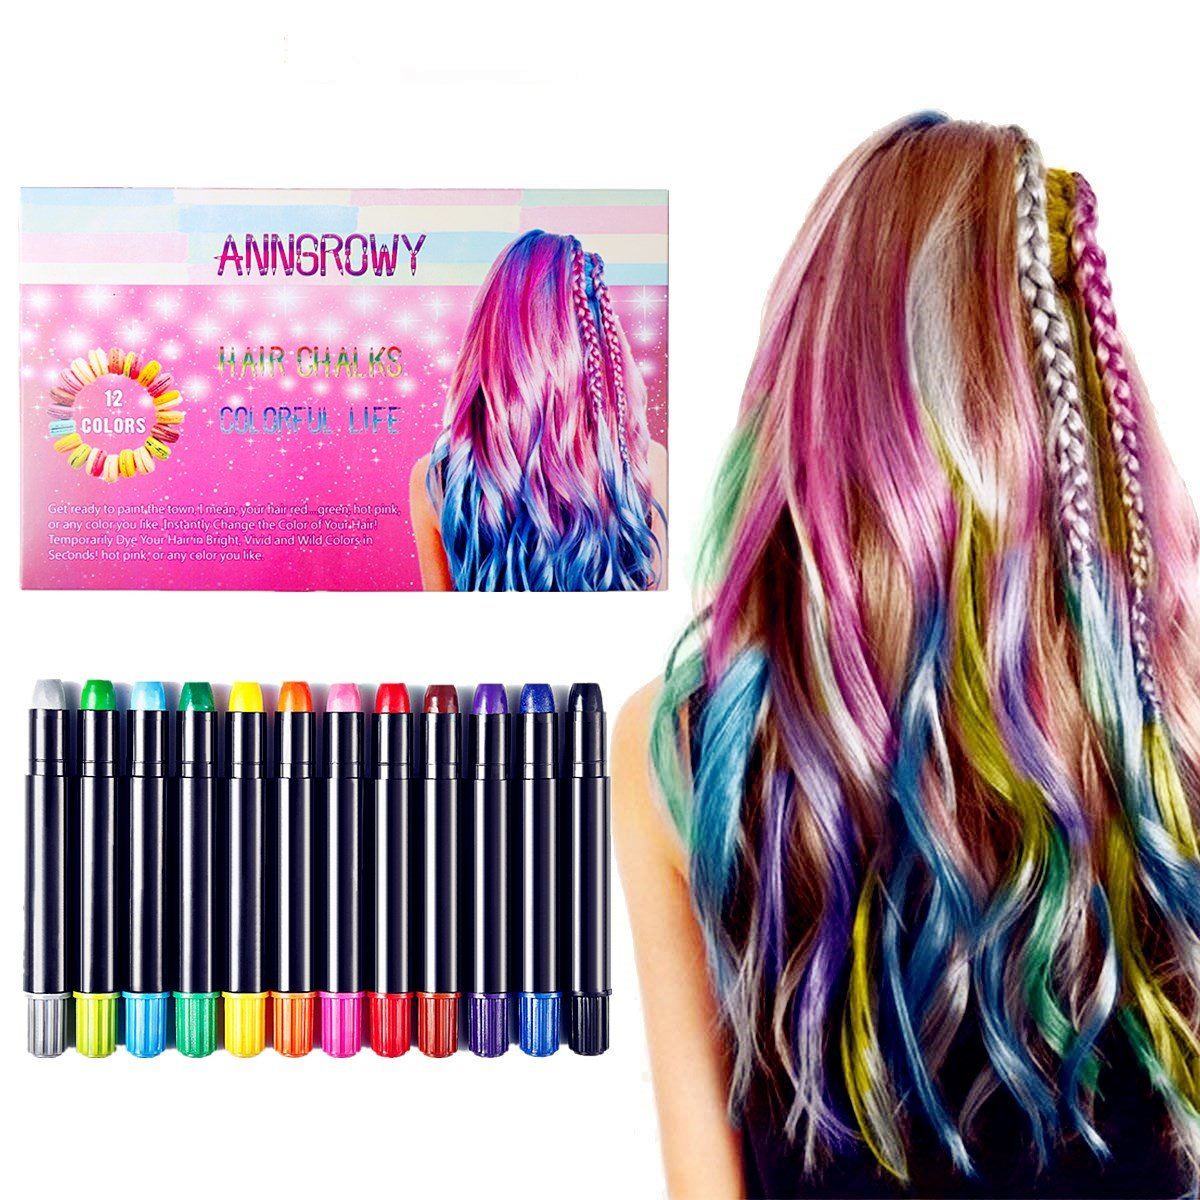 Hair Chalk for Girls Temporary Hair Color 12 Colors Non-Toxic Washable Hair Chalk Pens for Dark Hair and Blonde Brown Auburn Hair Birthday Gifts Present For Girls Hair Dye for Girls by anngrowy